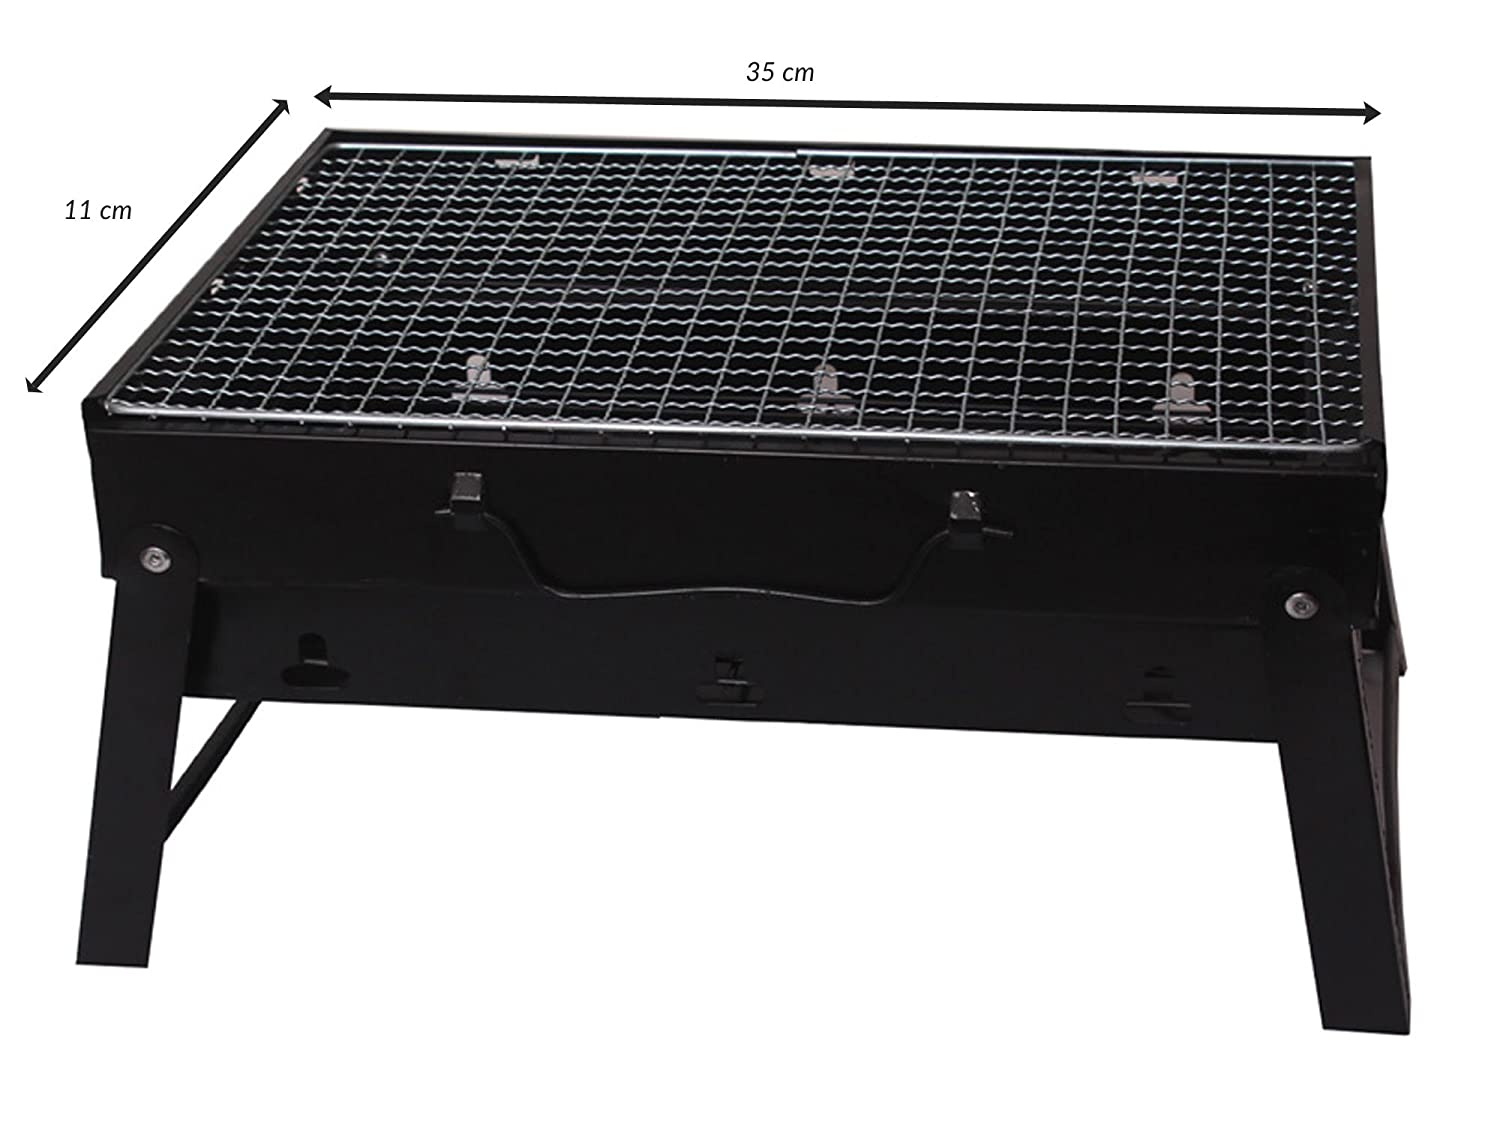 Alfa Mart Bbq Portable U0026 Foldable Charcoal Barbecue Grill   Both For  Outdoor U0026 Indoor: Amazon.in: Garden U0026 Outdoors